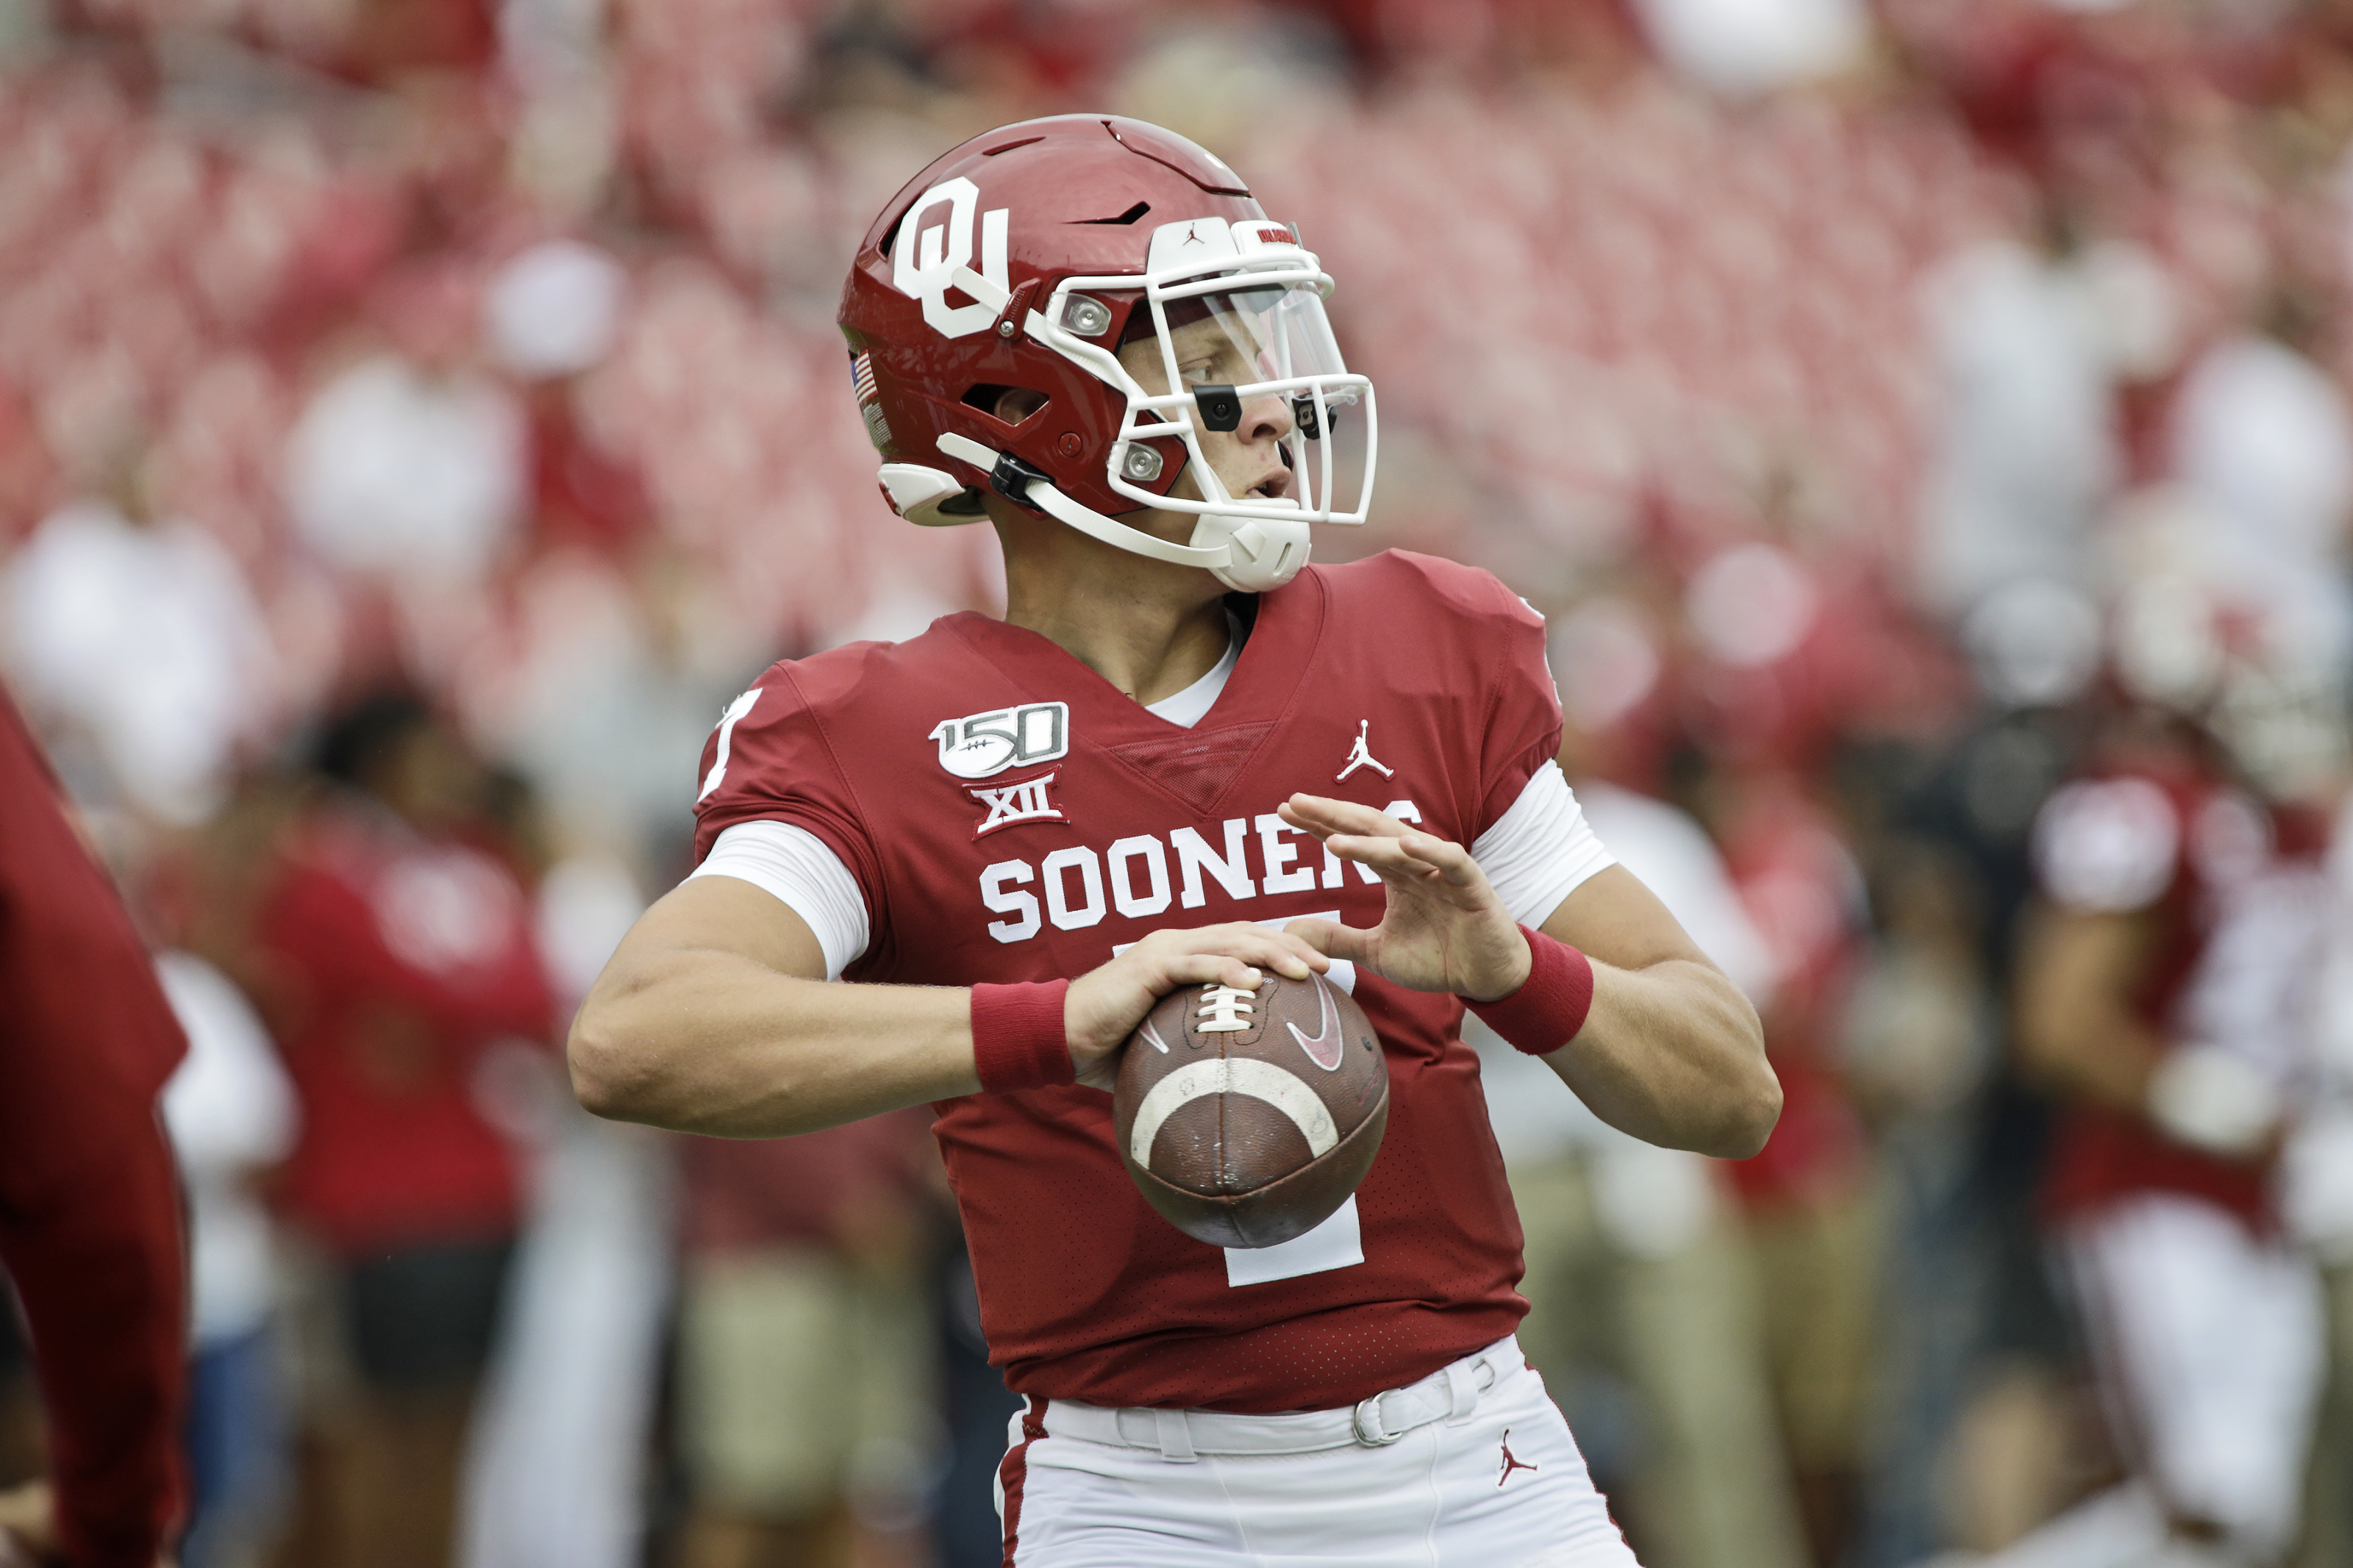 Oklahoma football: Next season's Sooners will get back to 'the way we were'